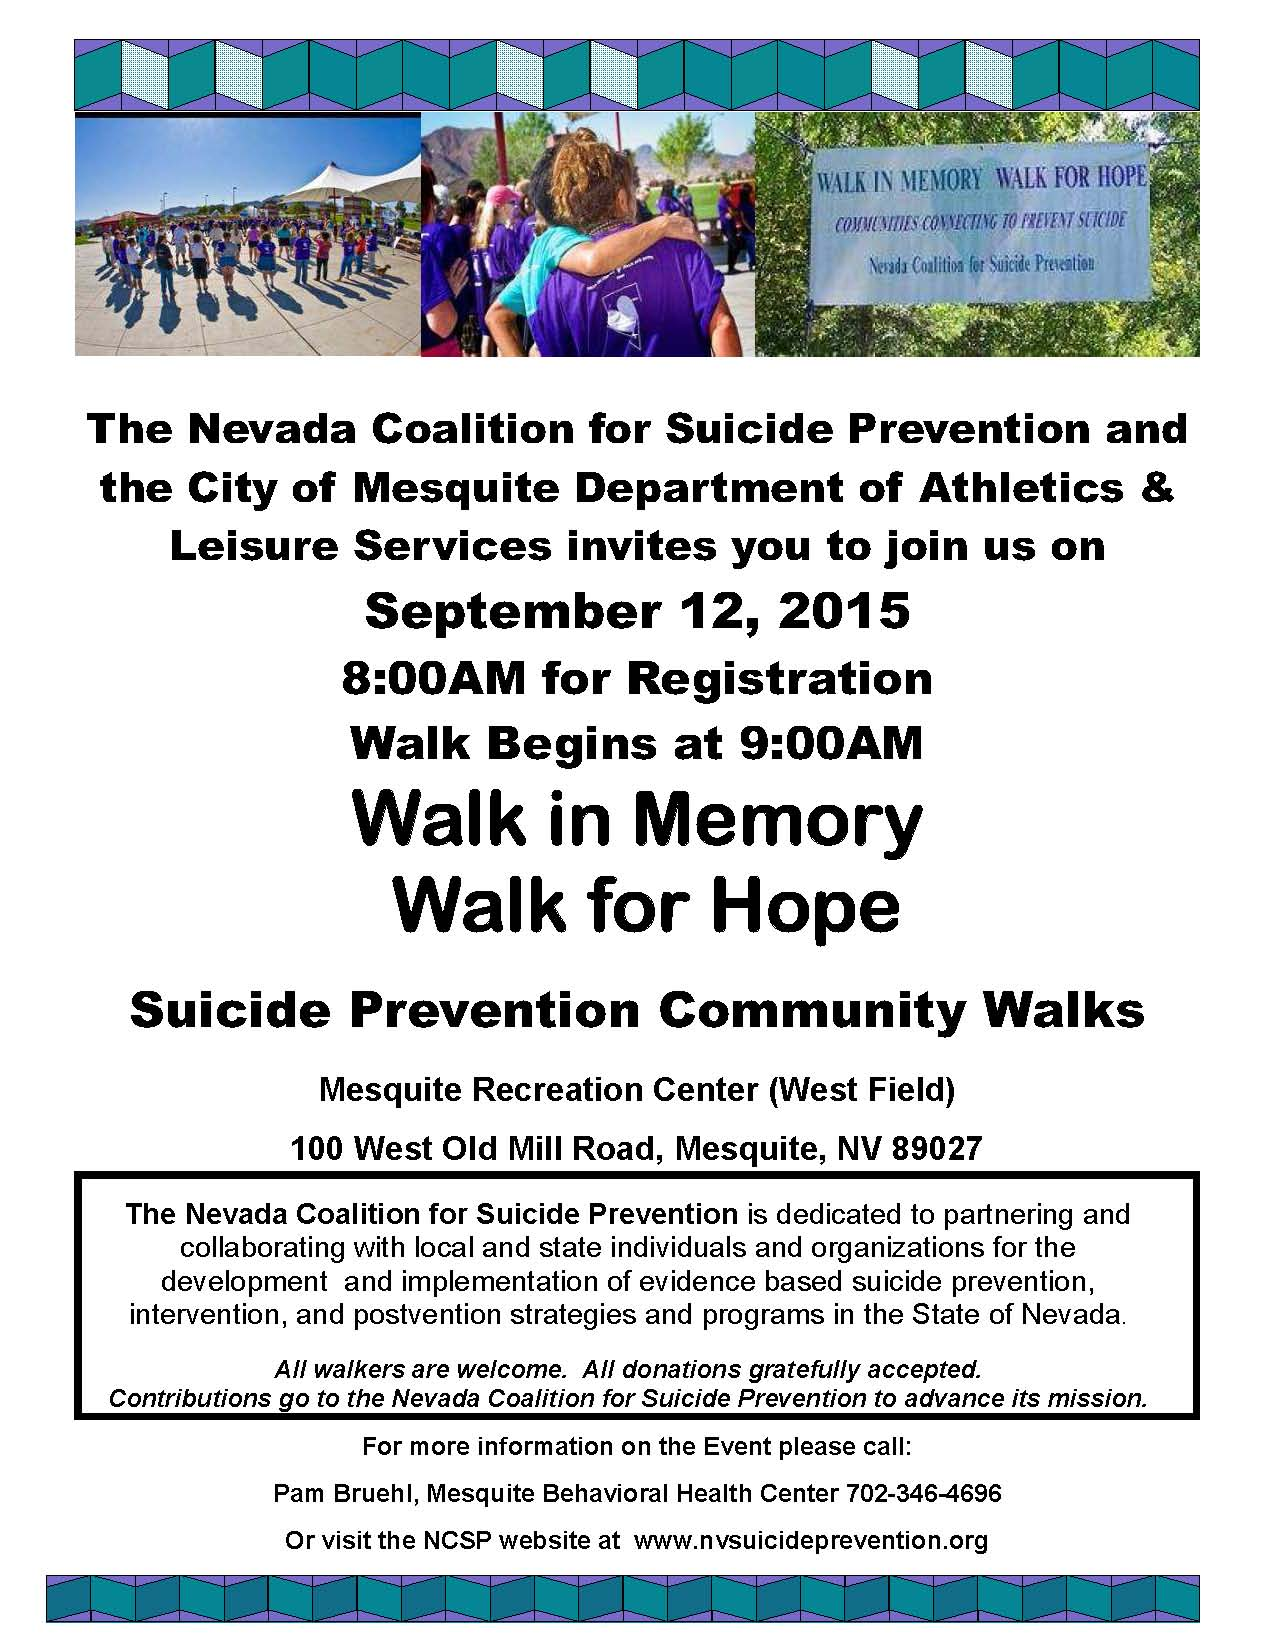 Annual Walk for Hope tomorrow